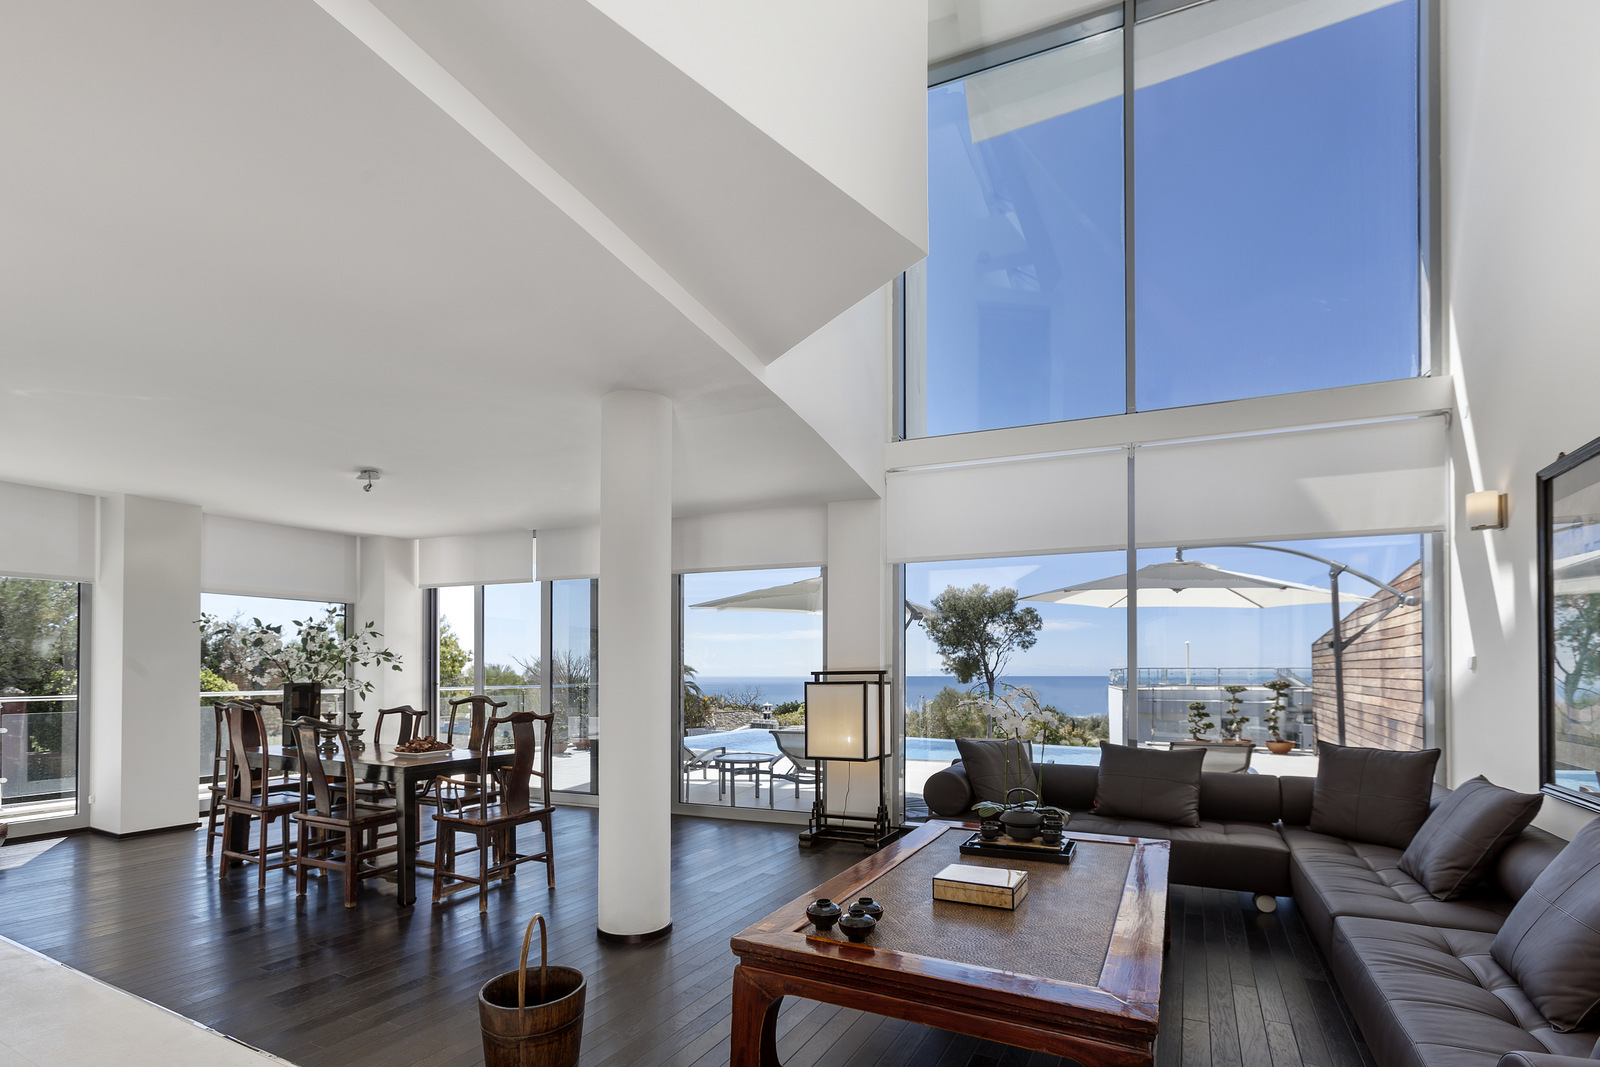 The significance of the Marbella property recovery